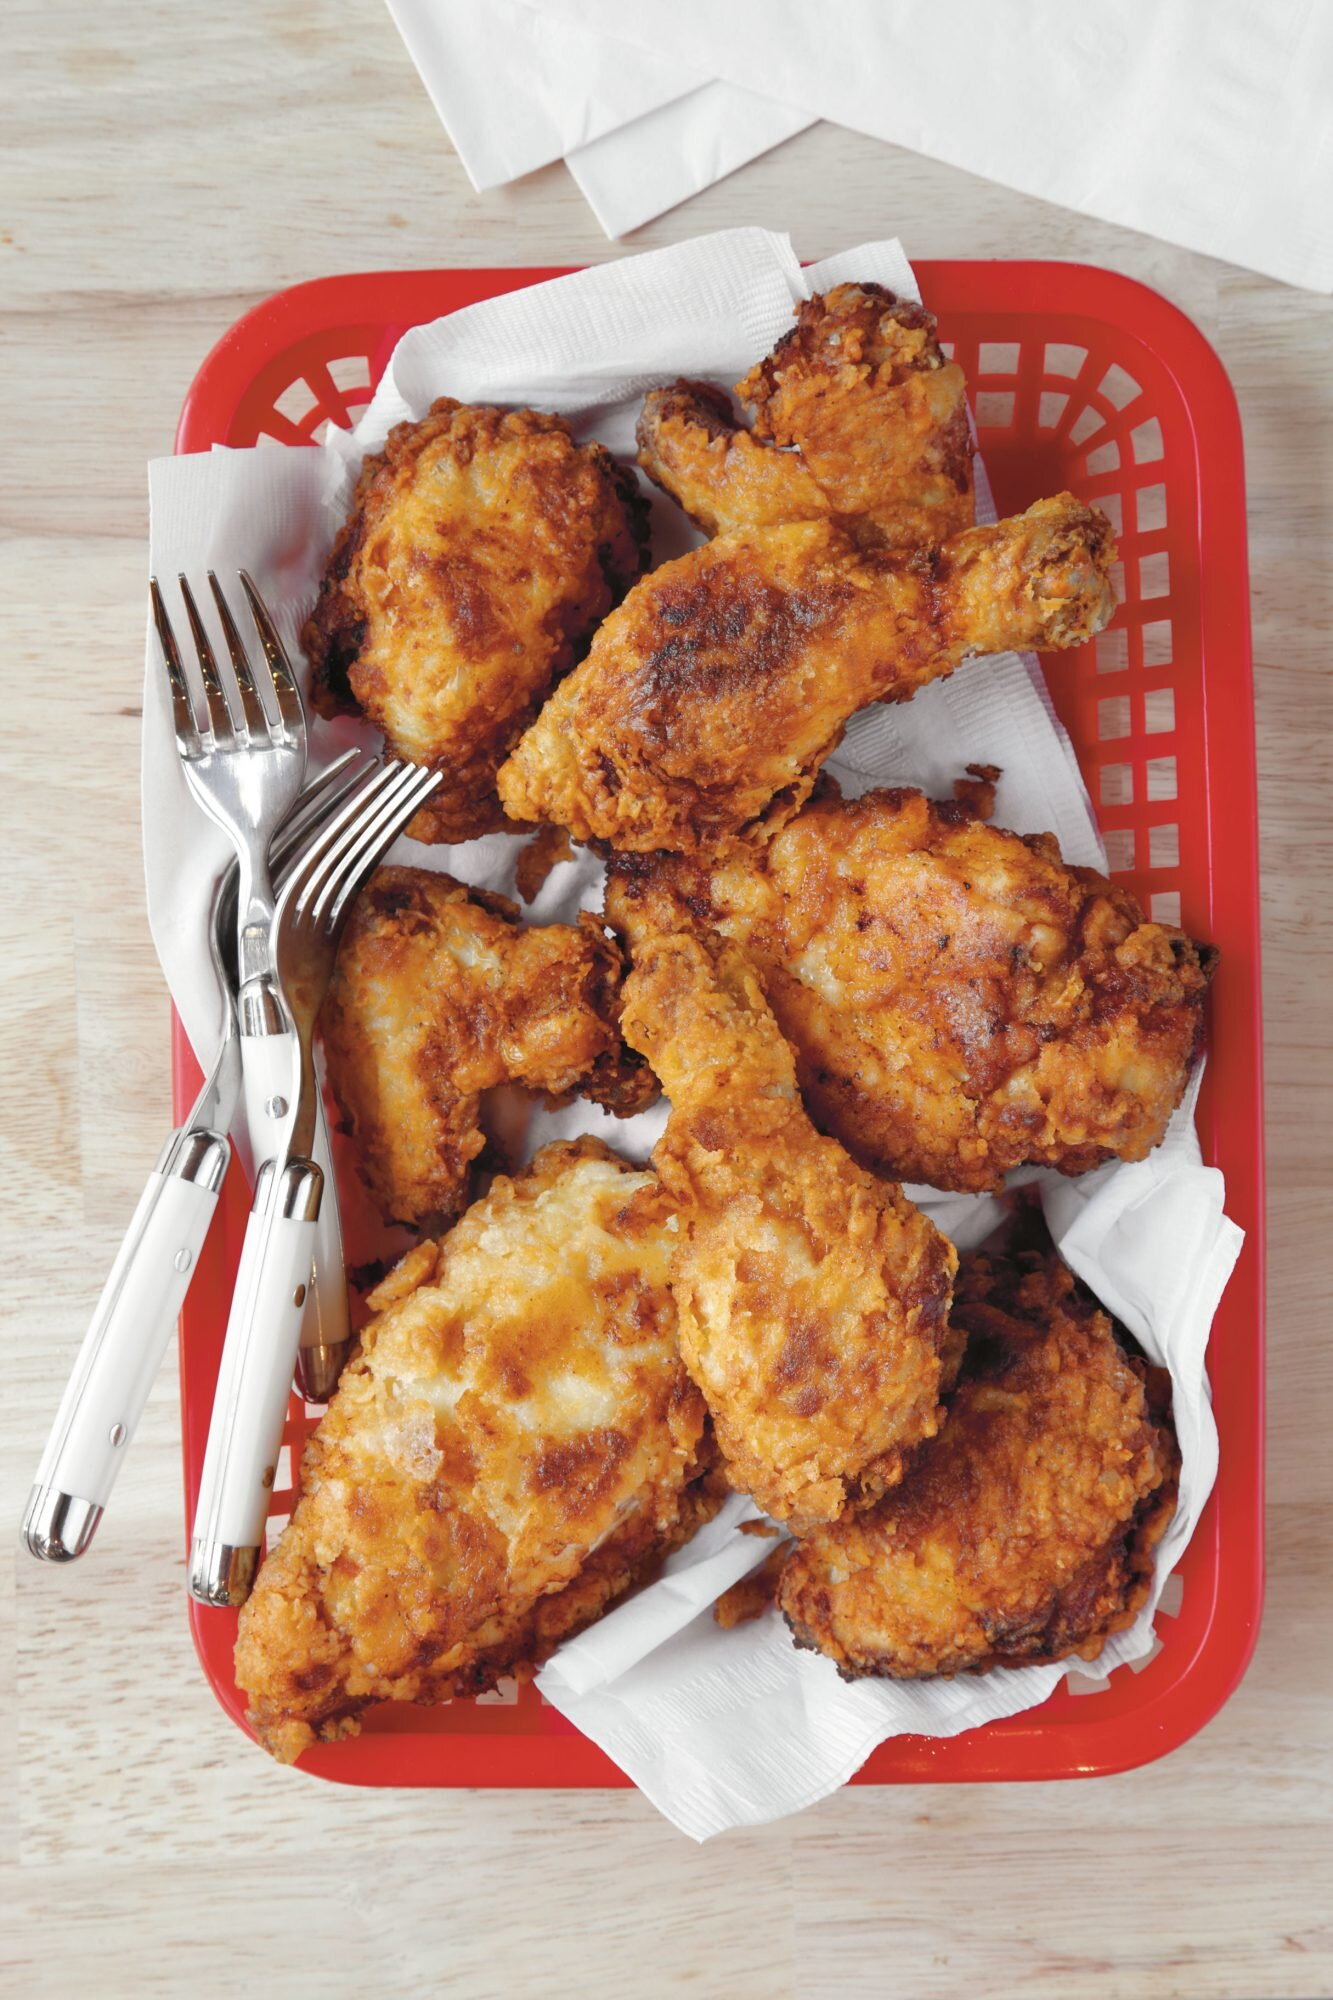 20 Sunday Dinner Ideas With Easy Recipes Southern Living